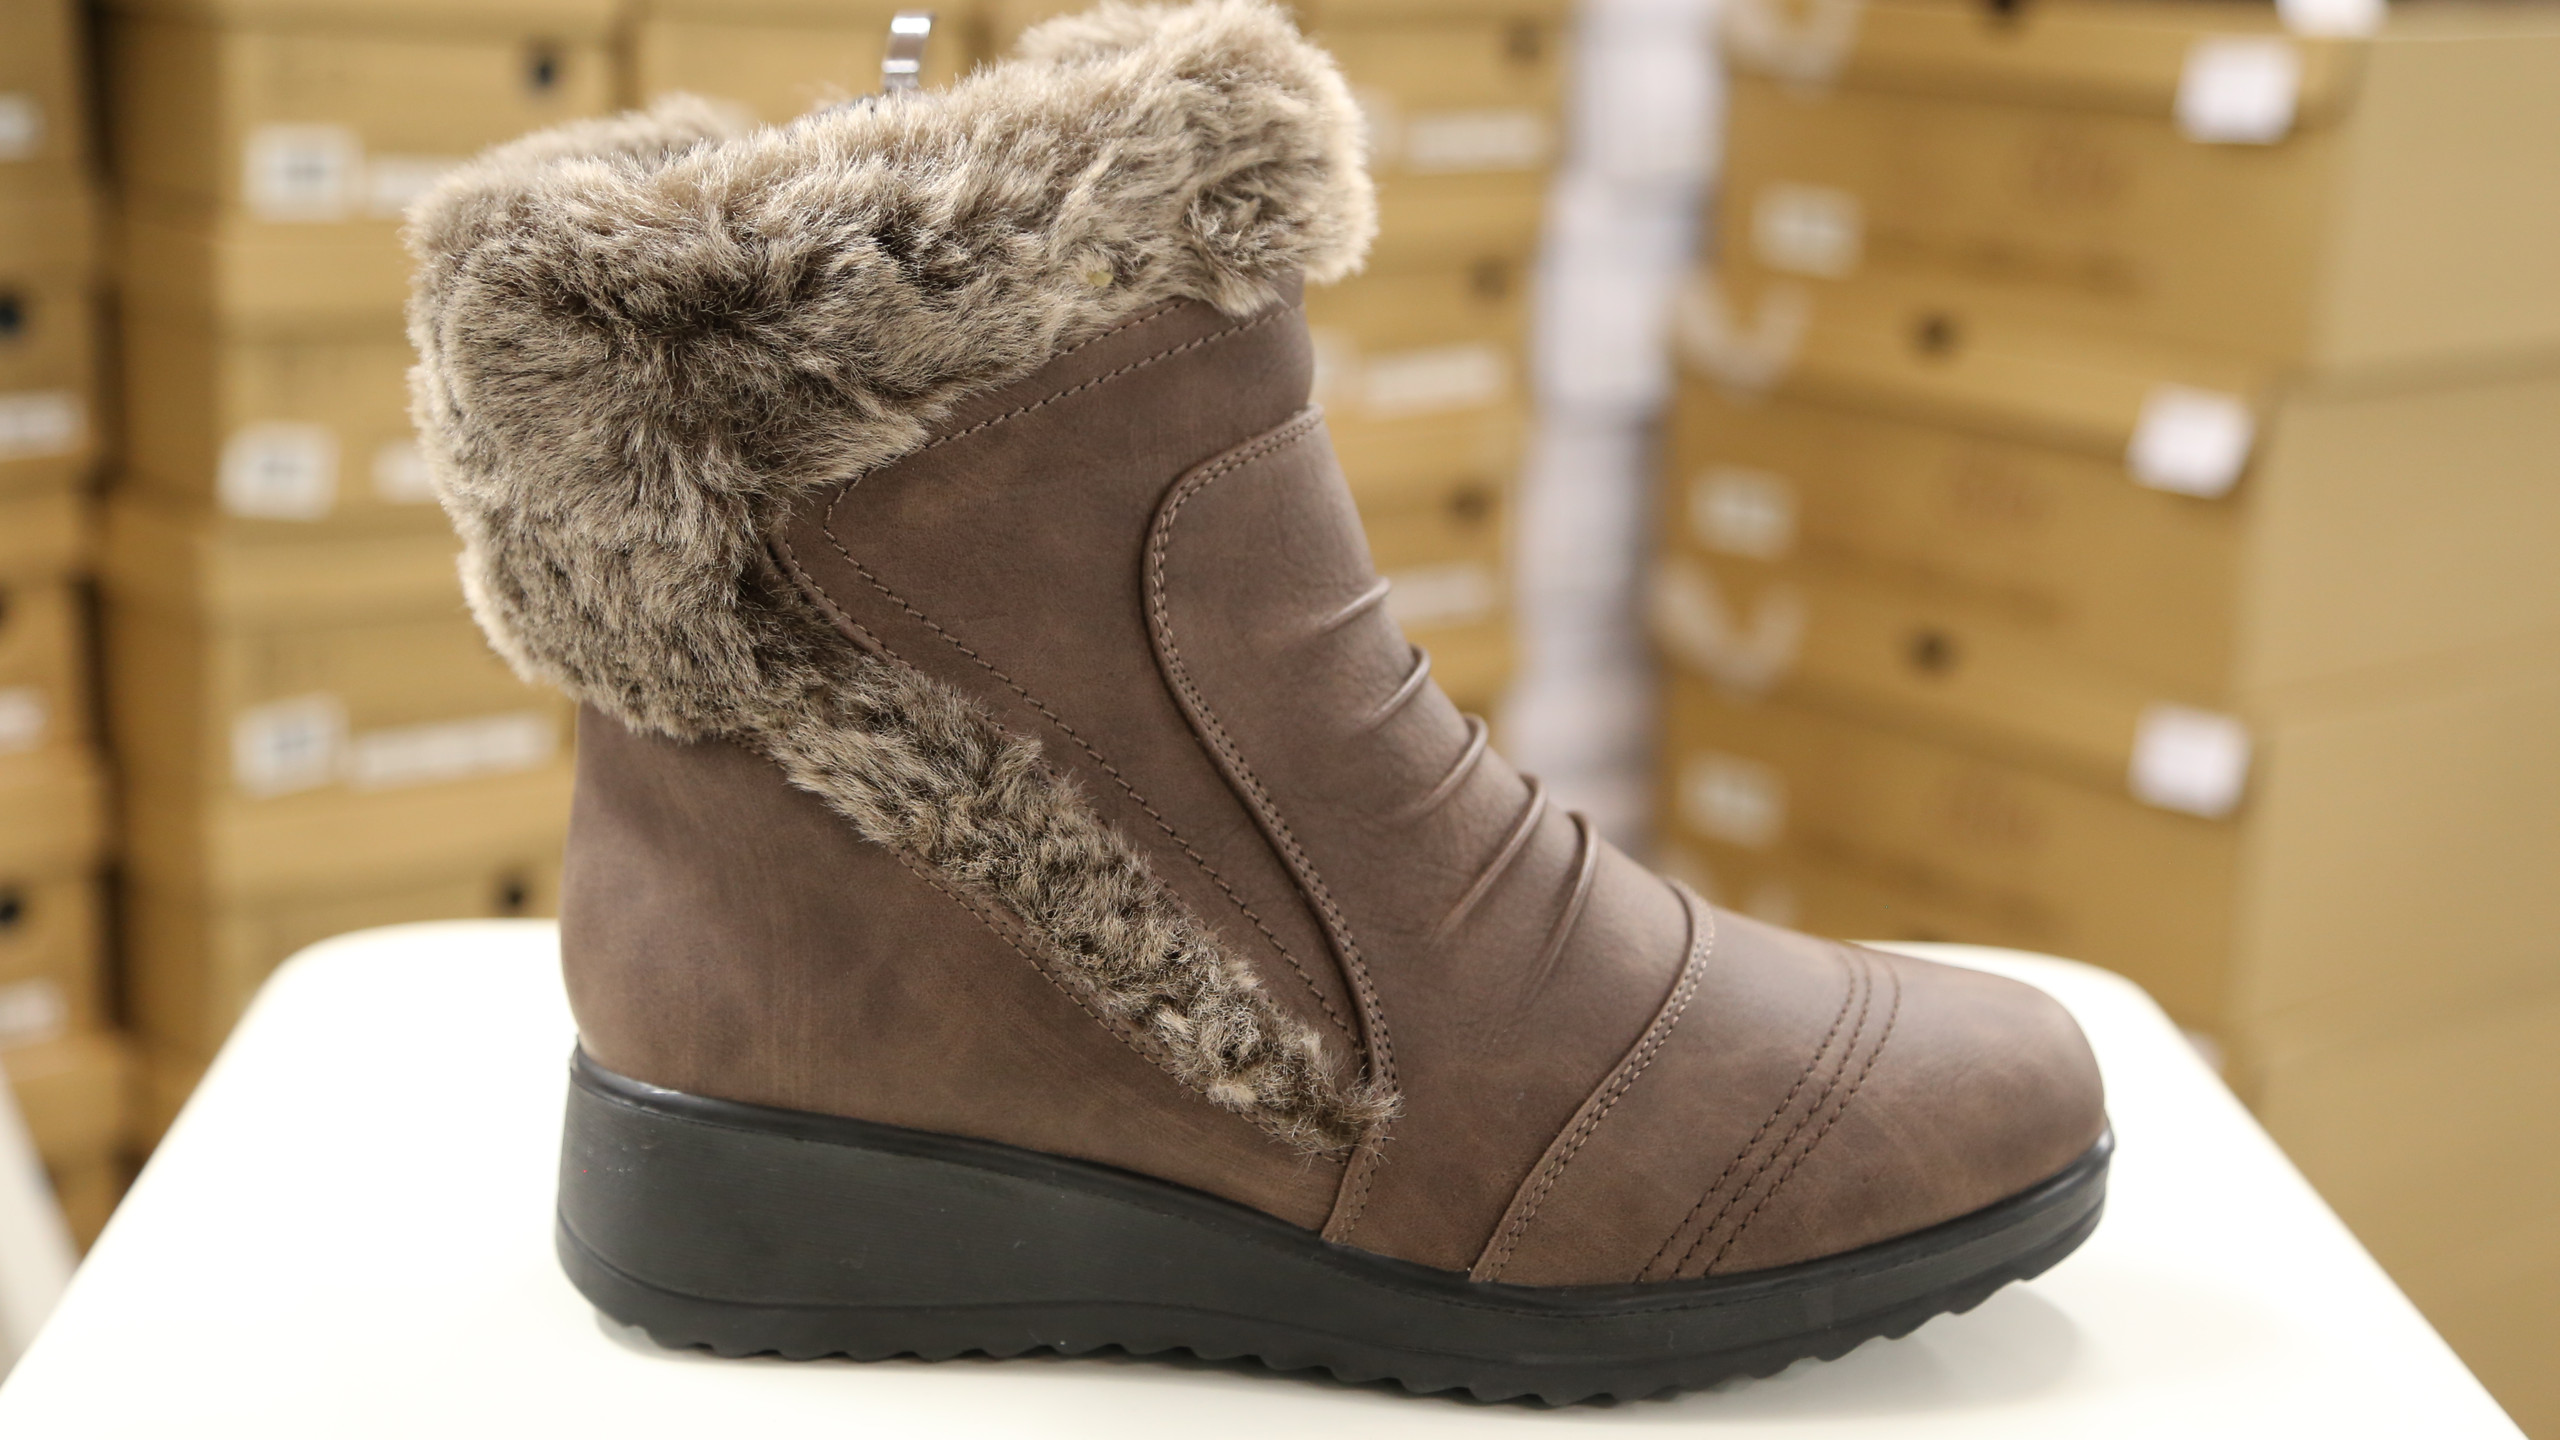 Brown winter boot